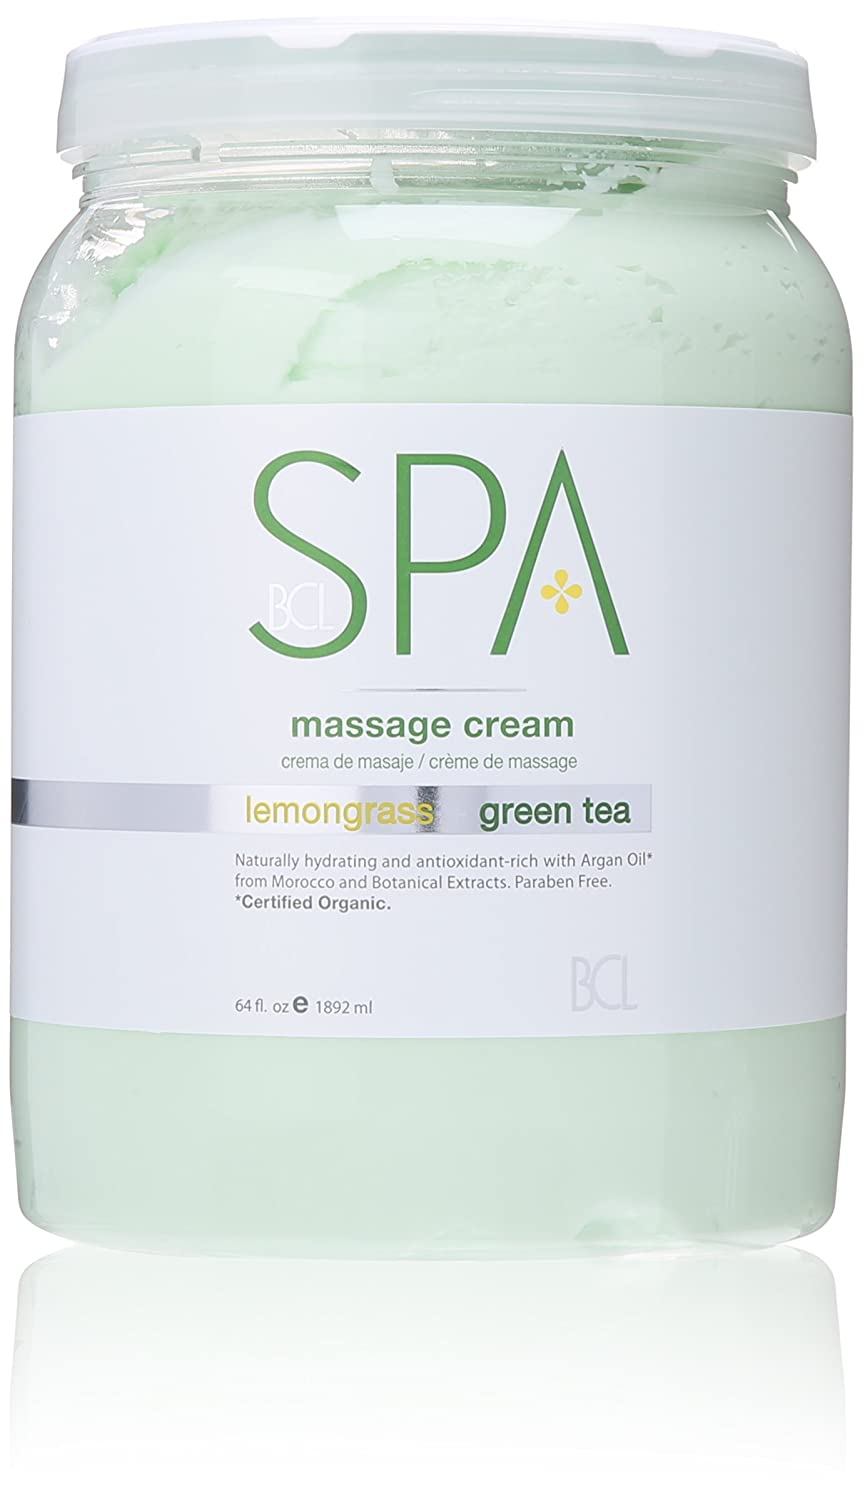 BCL Spa Lemongrass and Green Tea Massage Cream, 64 Ounce